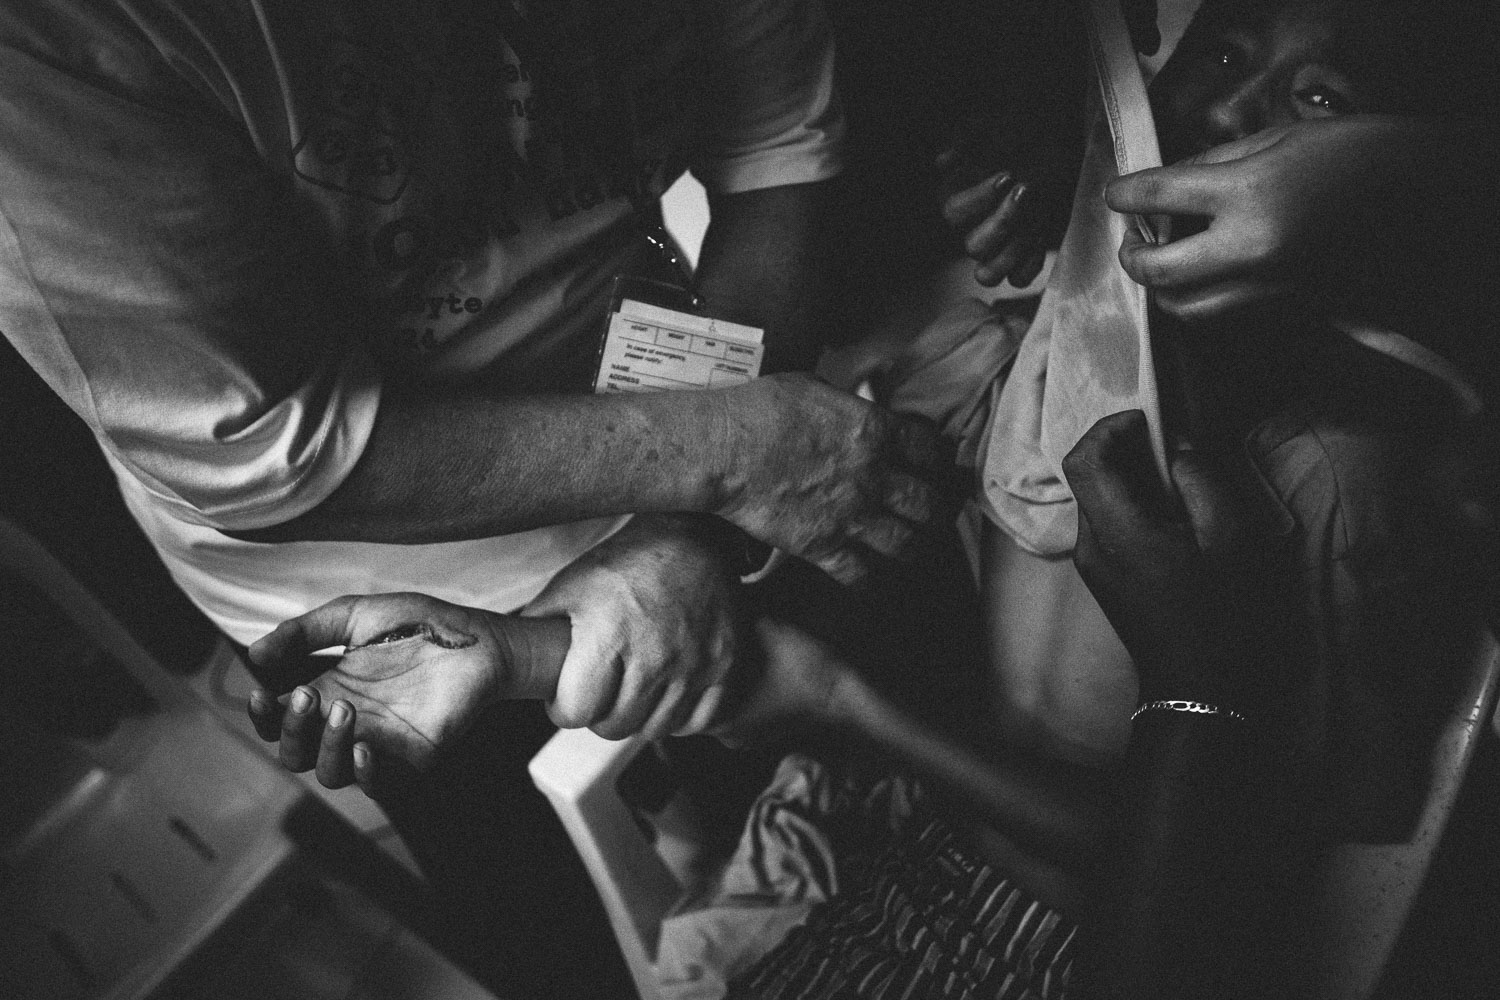 Village of Dulag. A boy is carried into the emergency room with a badly cut hand, where a team of American doctors stitch him up. By nothing short of a miracle he has avoided permanent damage to the critical nerves of the hand.